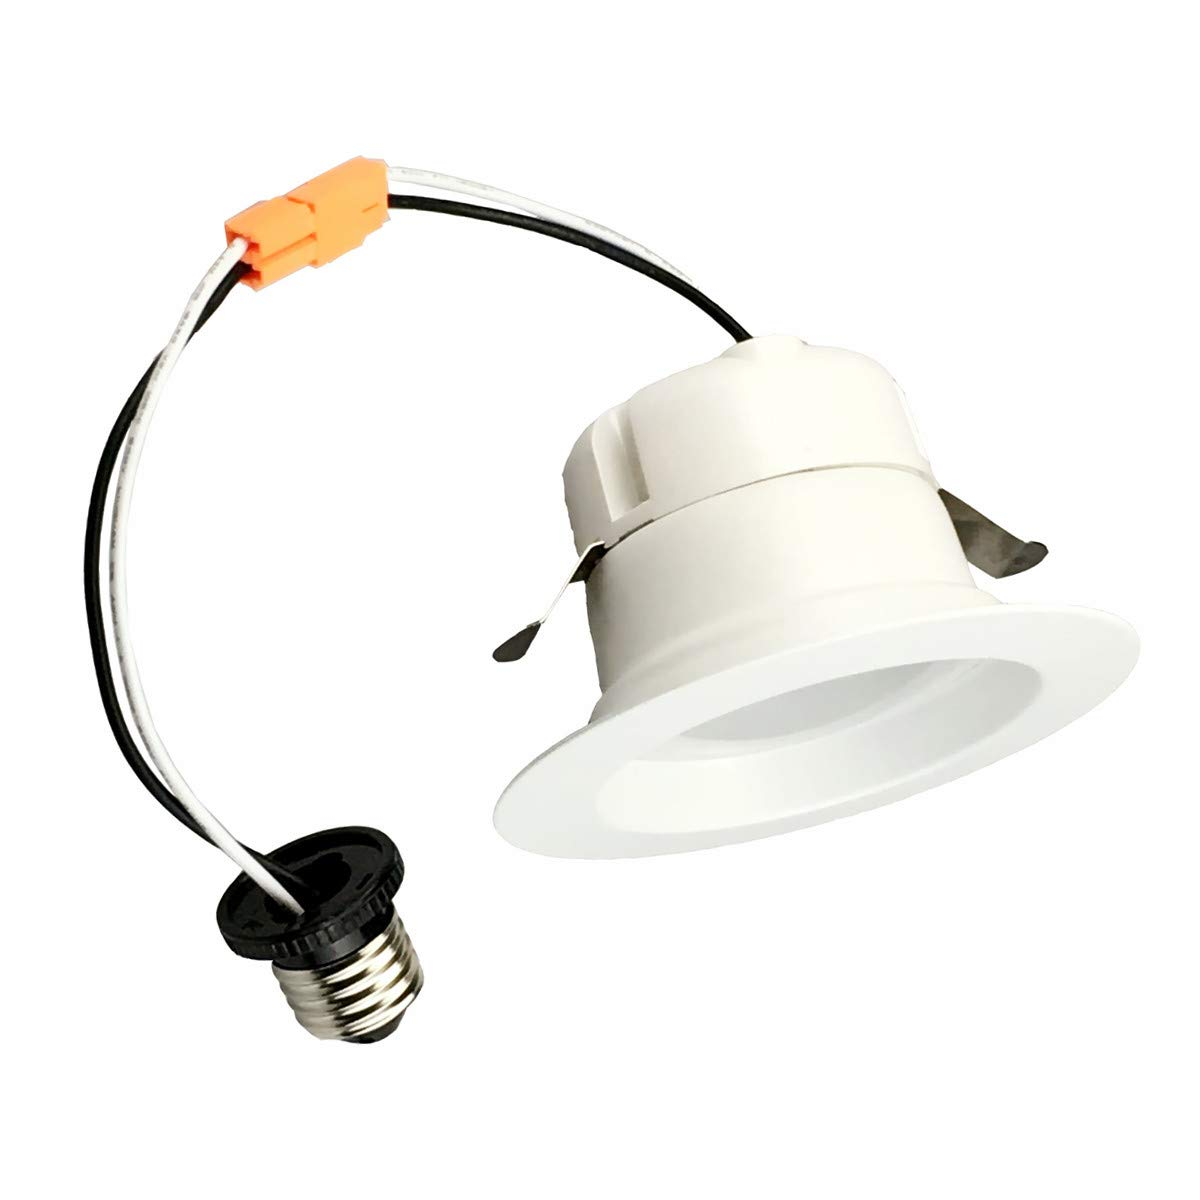 NICKLED 4 Inch 3 Colors in 1 Recessed LED Downlight Retrofit Kits Switch 3 Colors Optionally 3000K(Soft White), 4000K(Bright White), 5000K(Day Light) Dimmable 10W (50W Equiv.) 5 Years Warranty